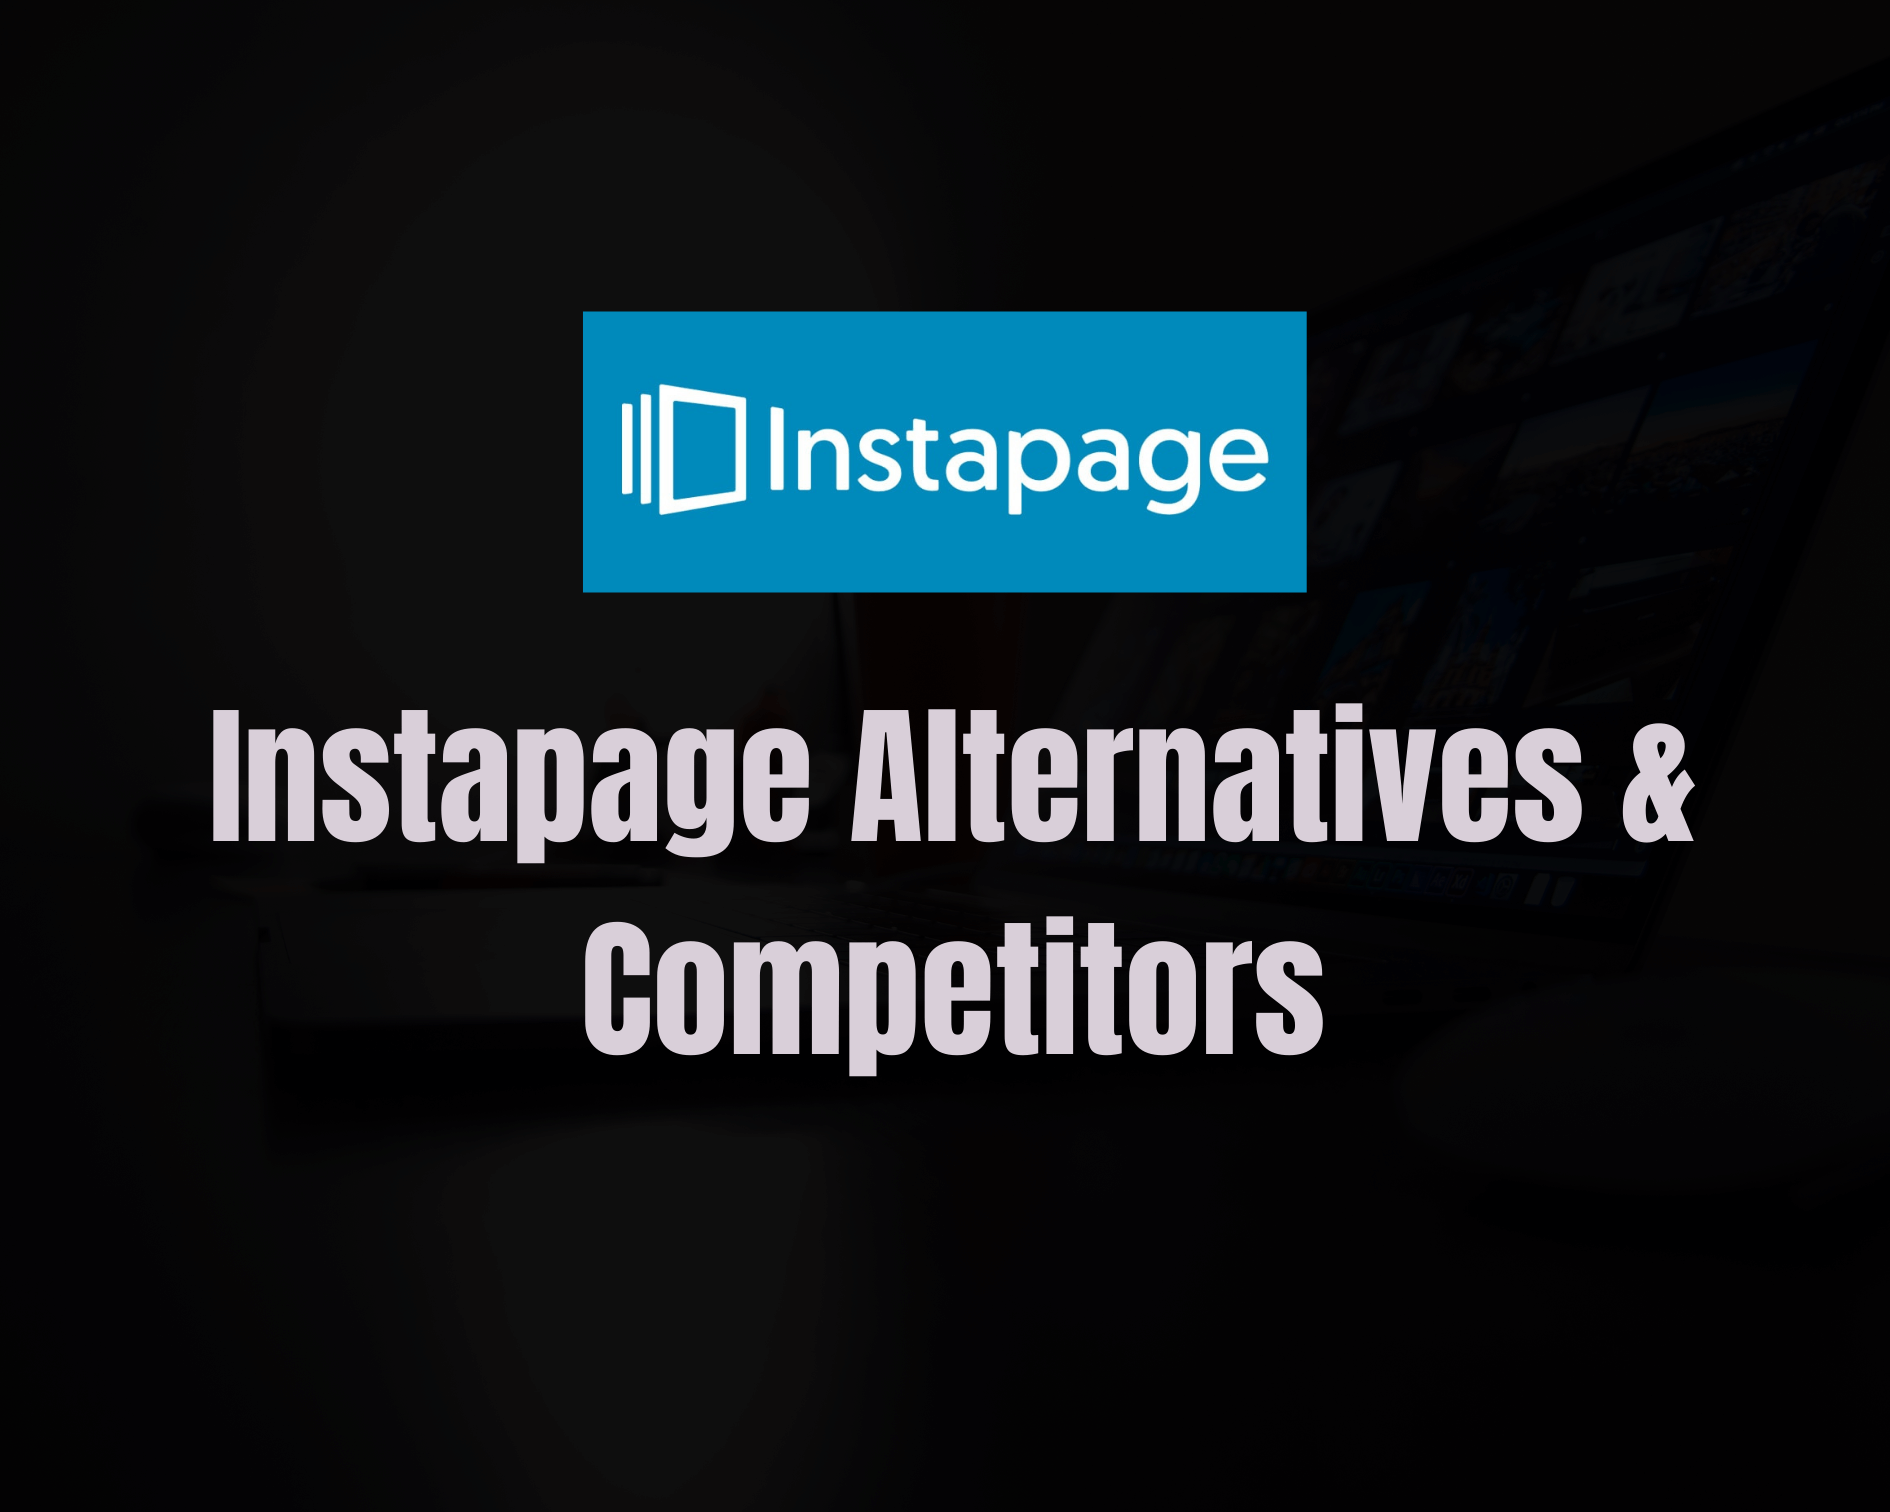 5 Best Instapage Alternatives & Competitors in 2021